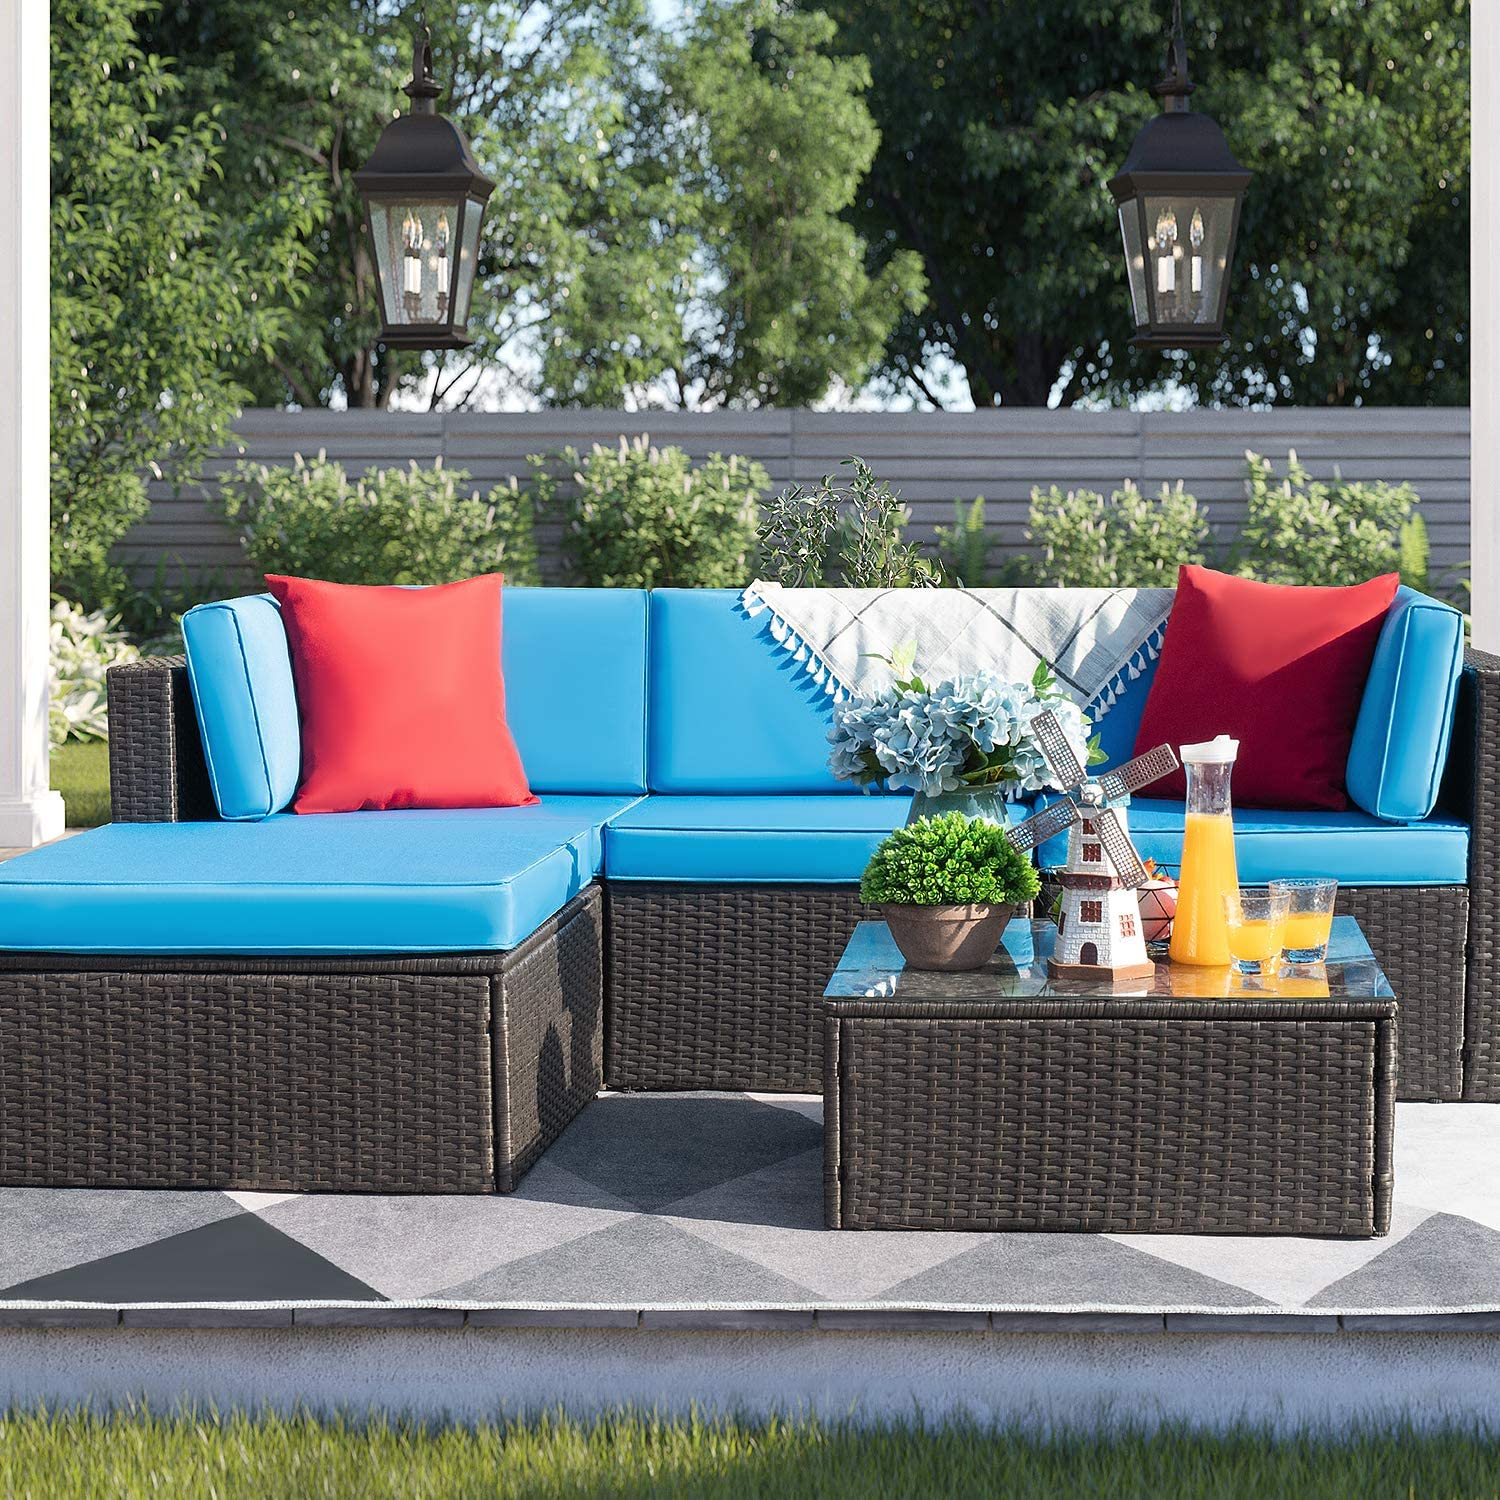 Devoko 5 Pieces Patio Furniture Sets All Weather Outdoor Sectional Sofa Manual Weaving Wicker Rattan Patio Conversation Set with Cushion and Glass Table (Blue)